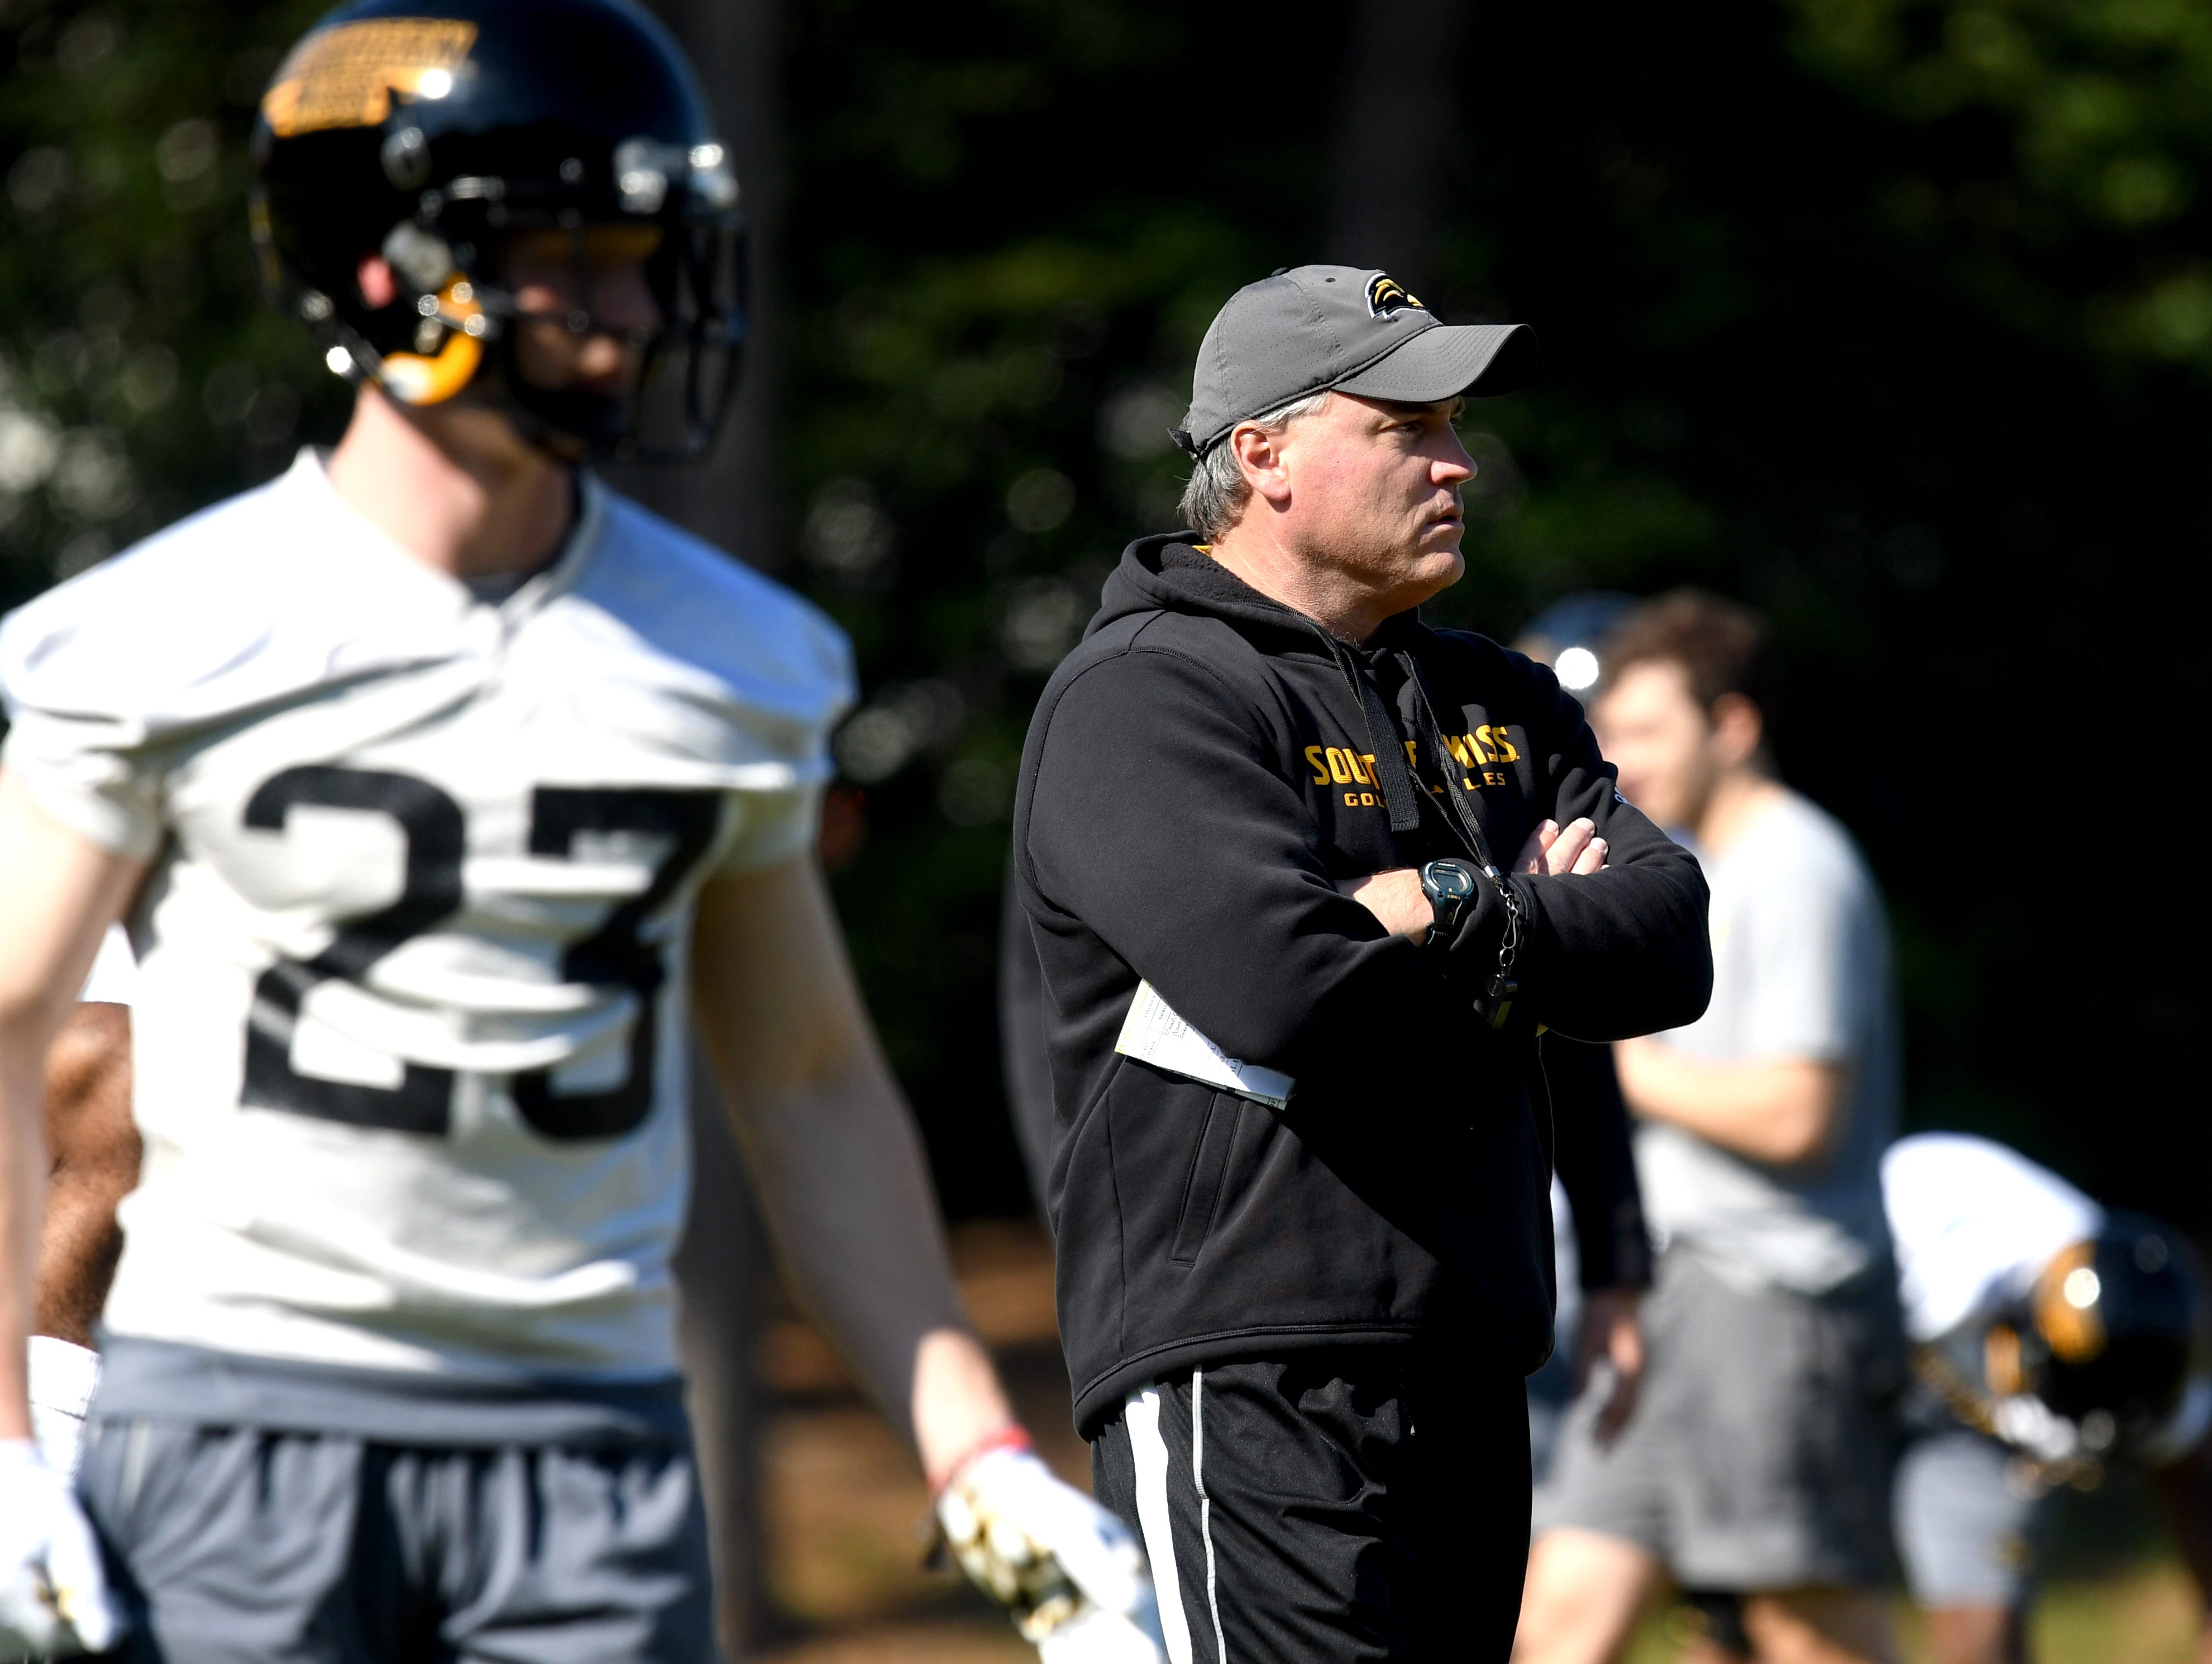 Southern Miss head coach Jay Hopson watches his players during the first day of spring practice in Hattiesburg on Tuesday, March 19, 2019.